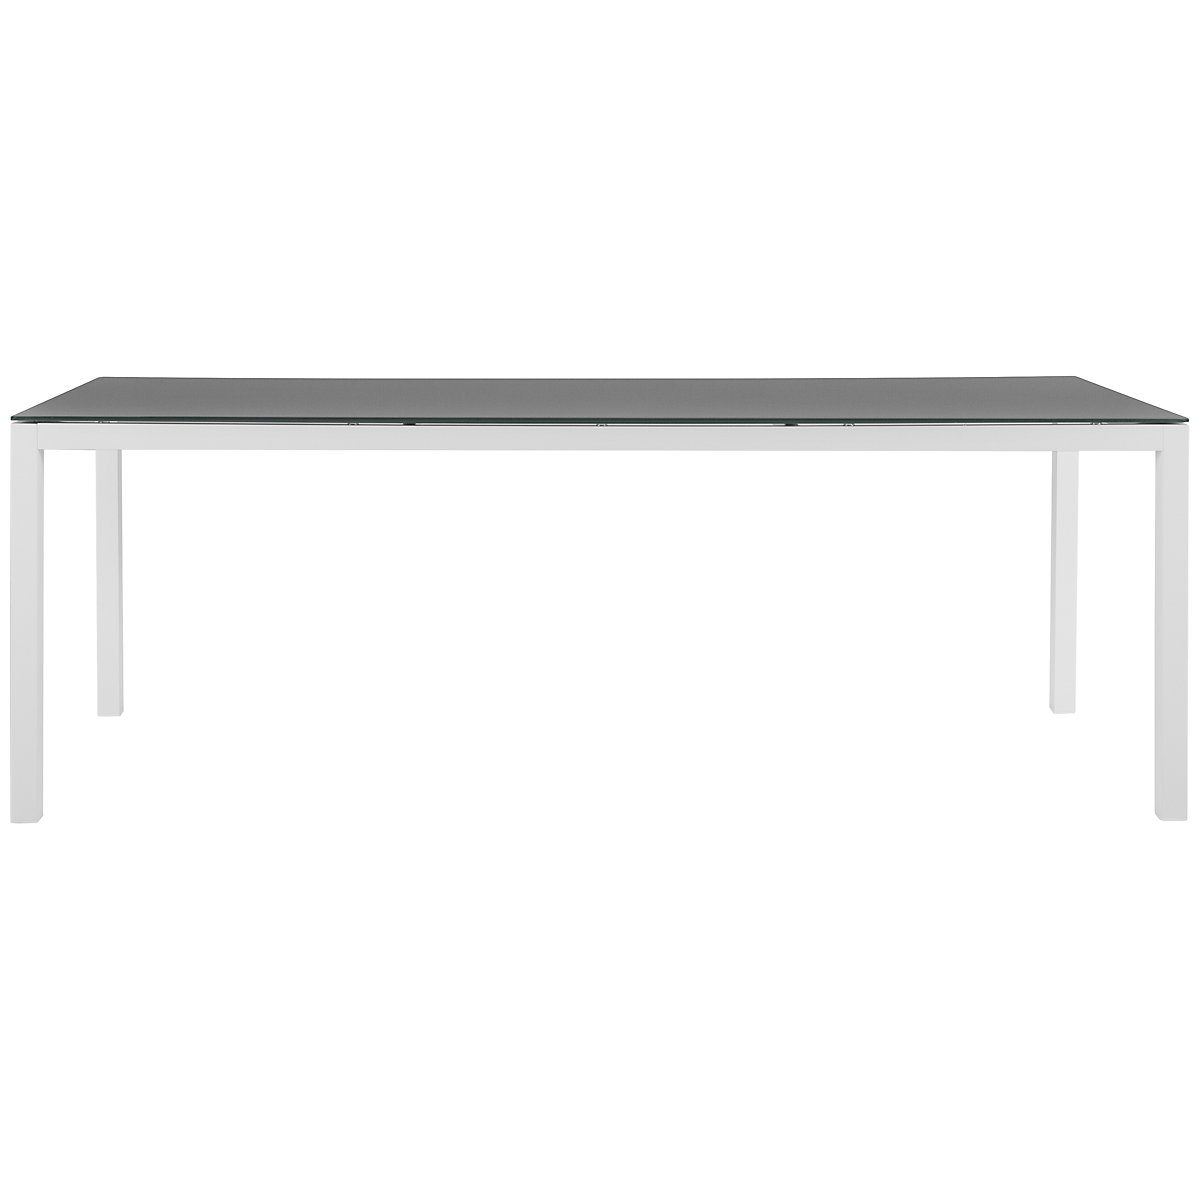 "Lisbon Gray 86"" Rectangular Table"